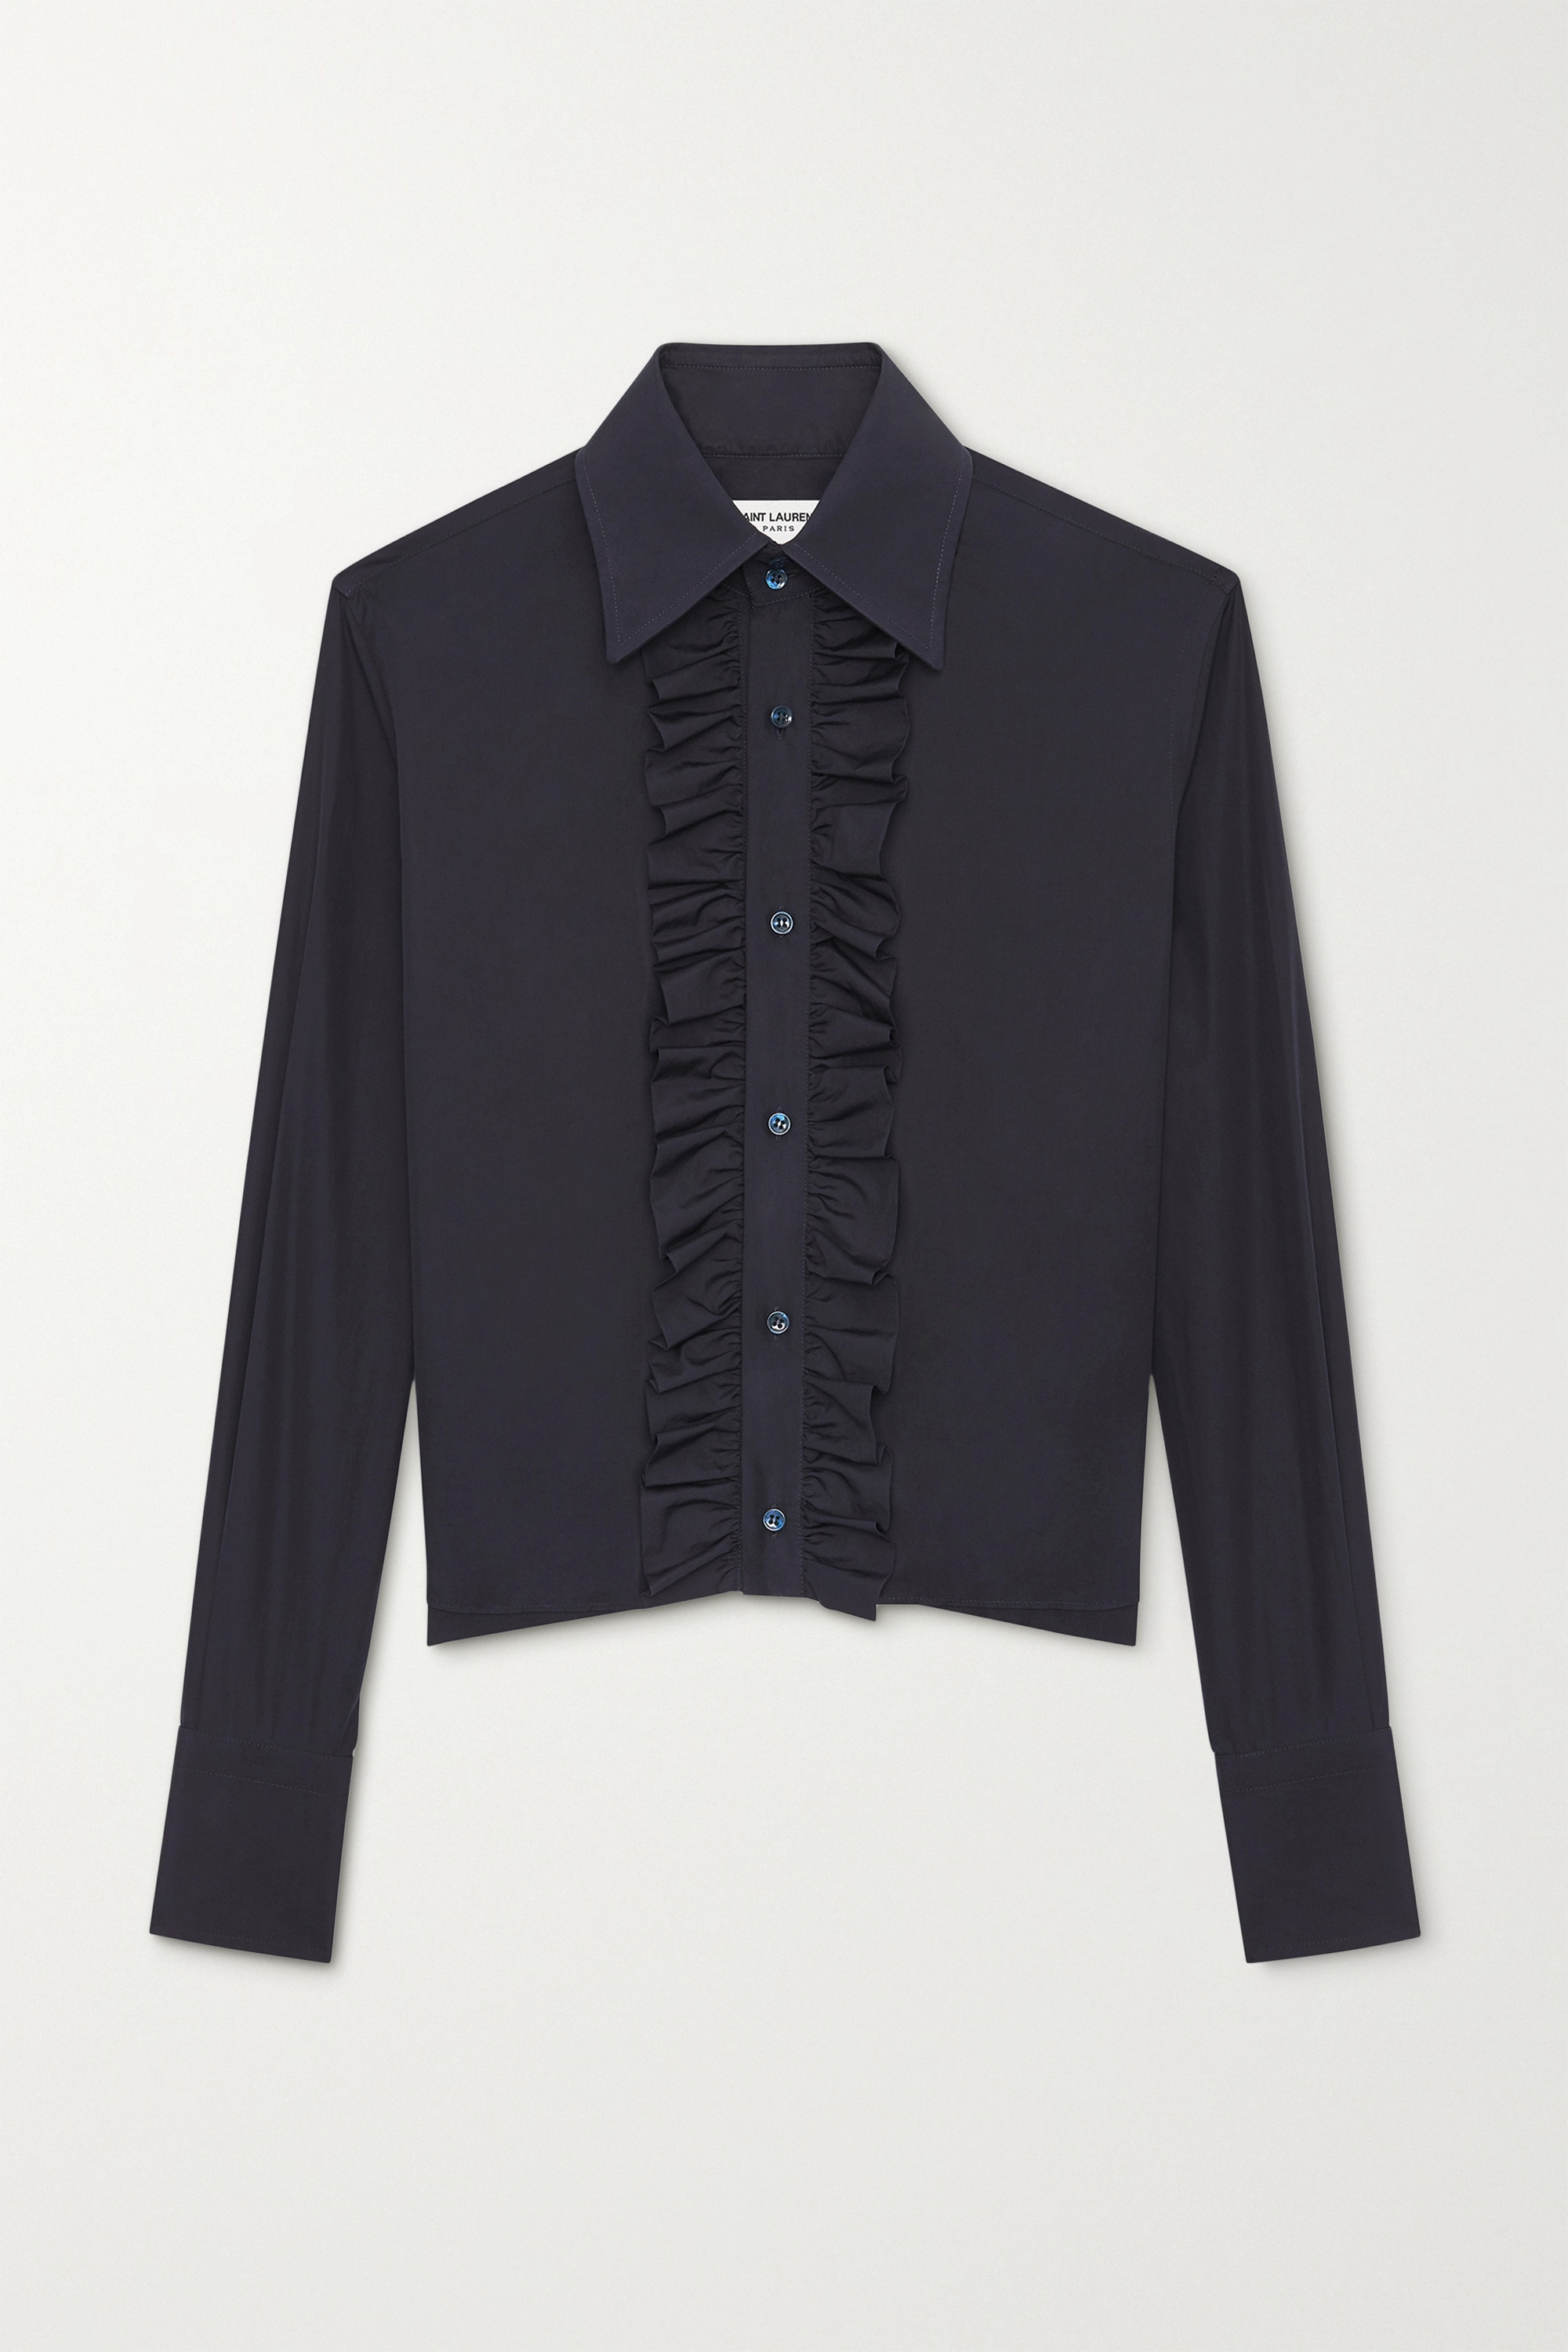 SAINT LAURENT Ruffled cotton-poplin shirt